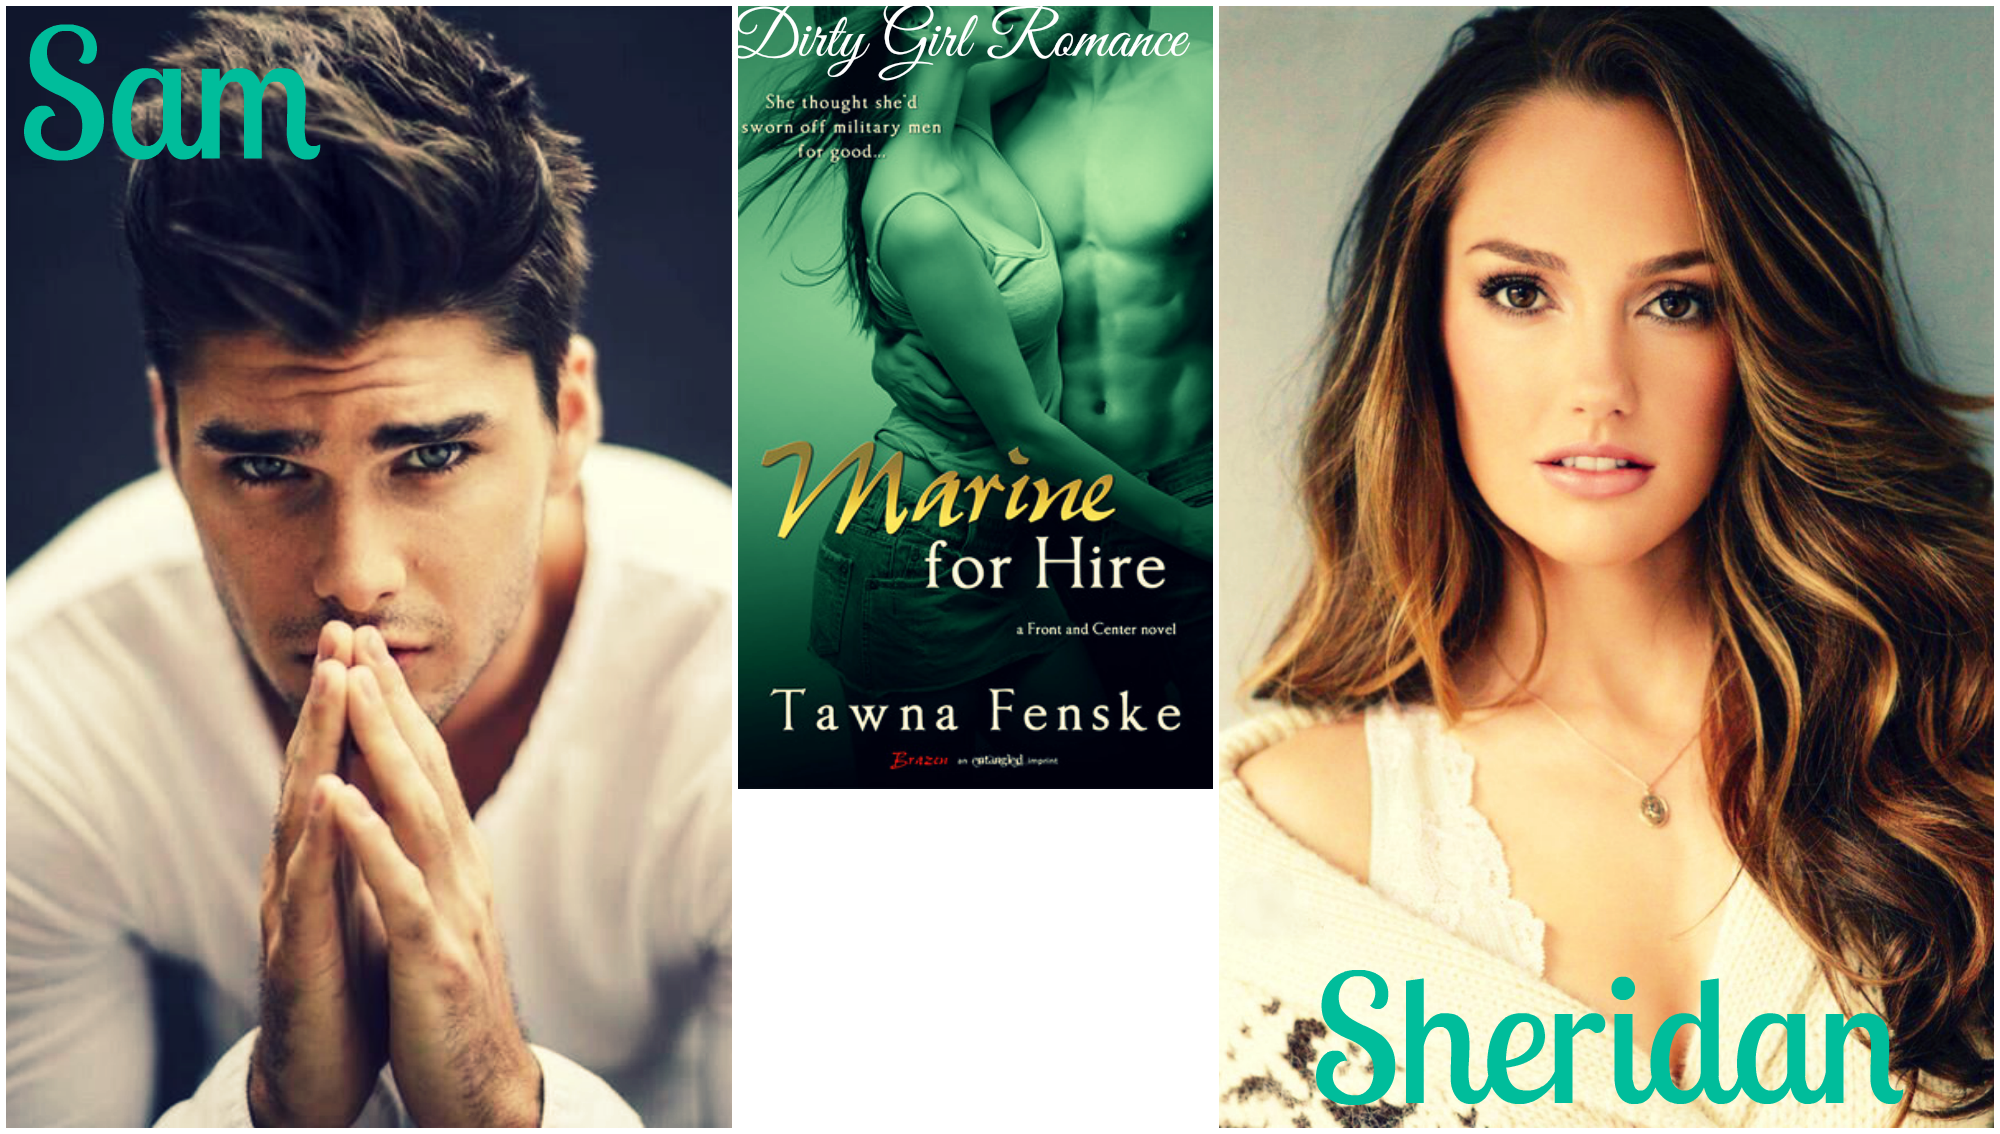 Marine for Hire (Front and Center) by Tawna Fenske